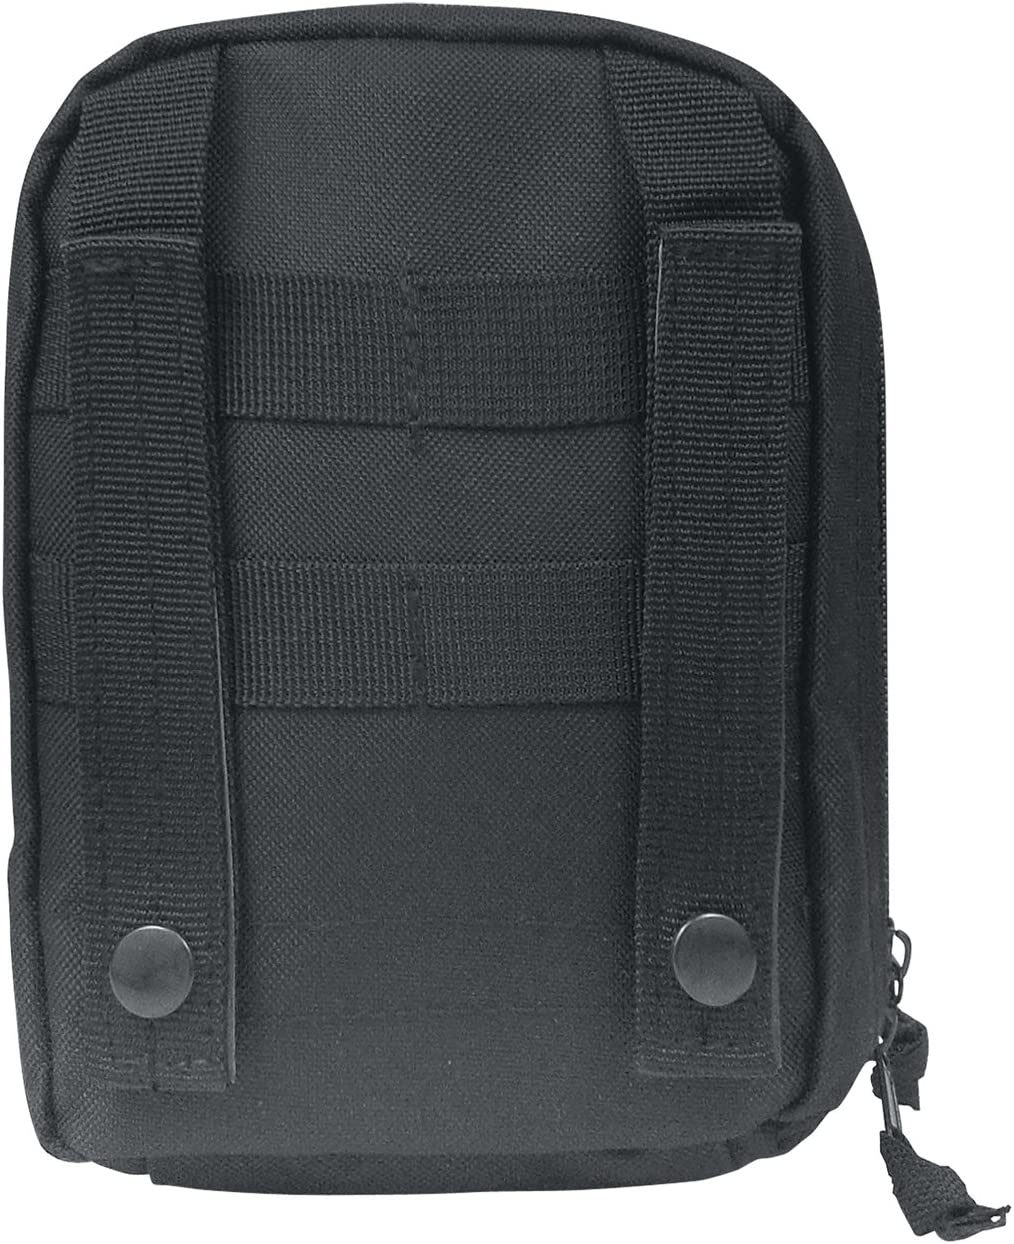 Rothco Same day Our shop OFFers the best service shipping Molle Tactical Pouch Aid First